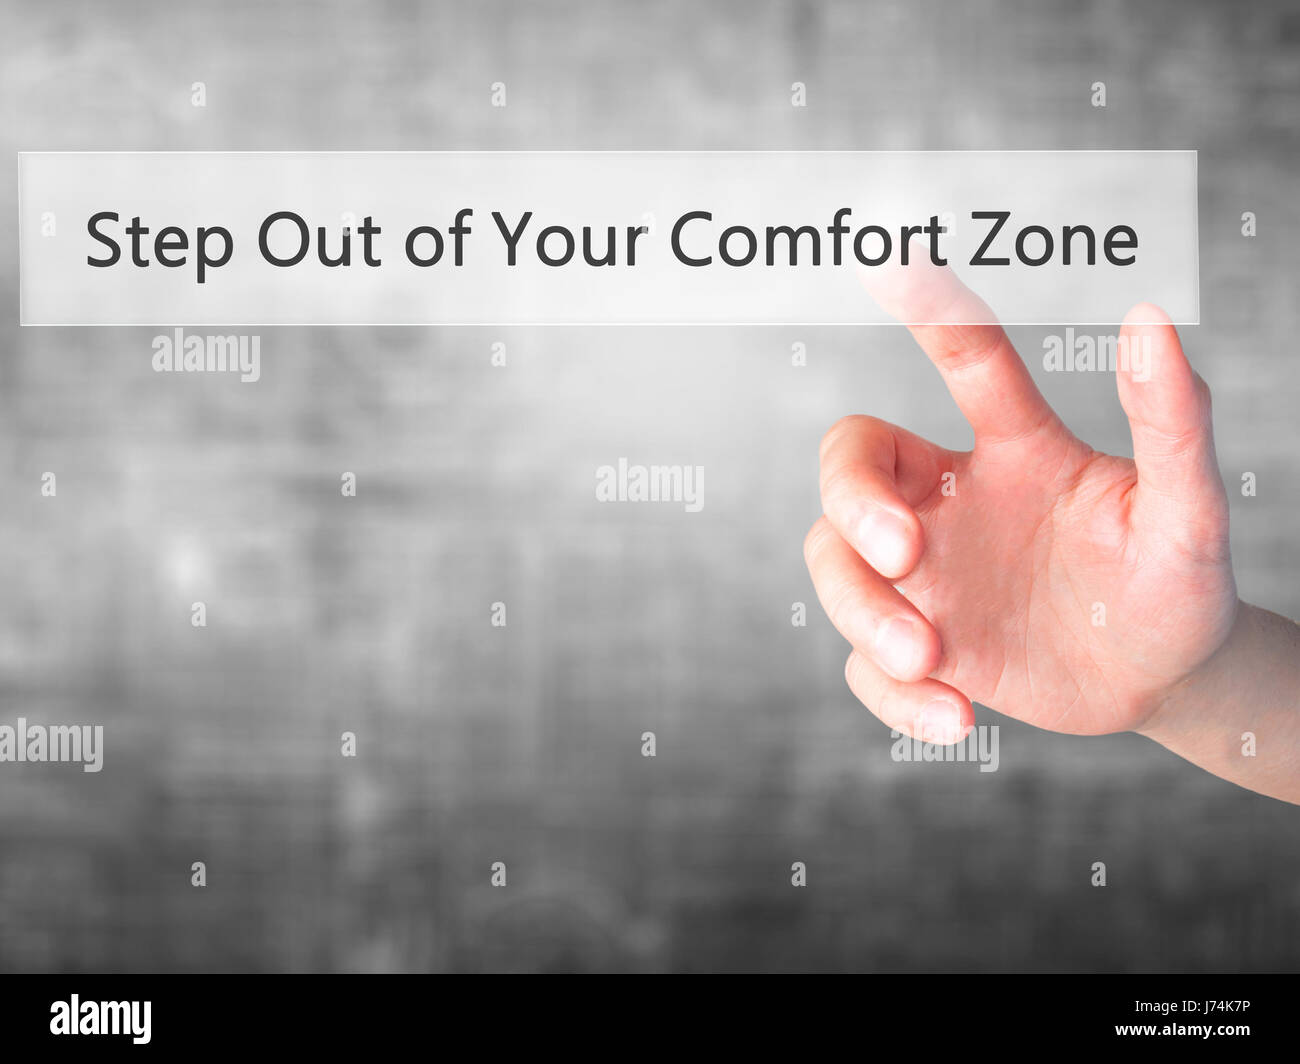 Step Out of Your Comfort Zone - Hand pressing a button on blurred background concept . Business, technology, internet concept. Stock Photo Stock Photo